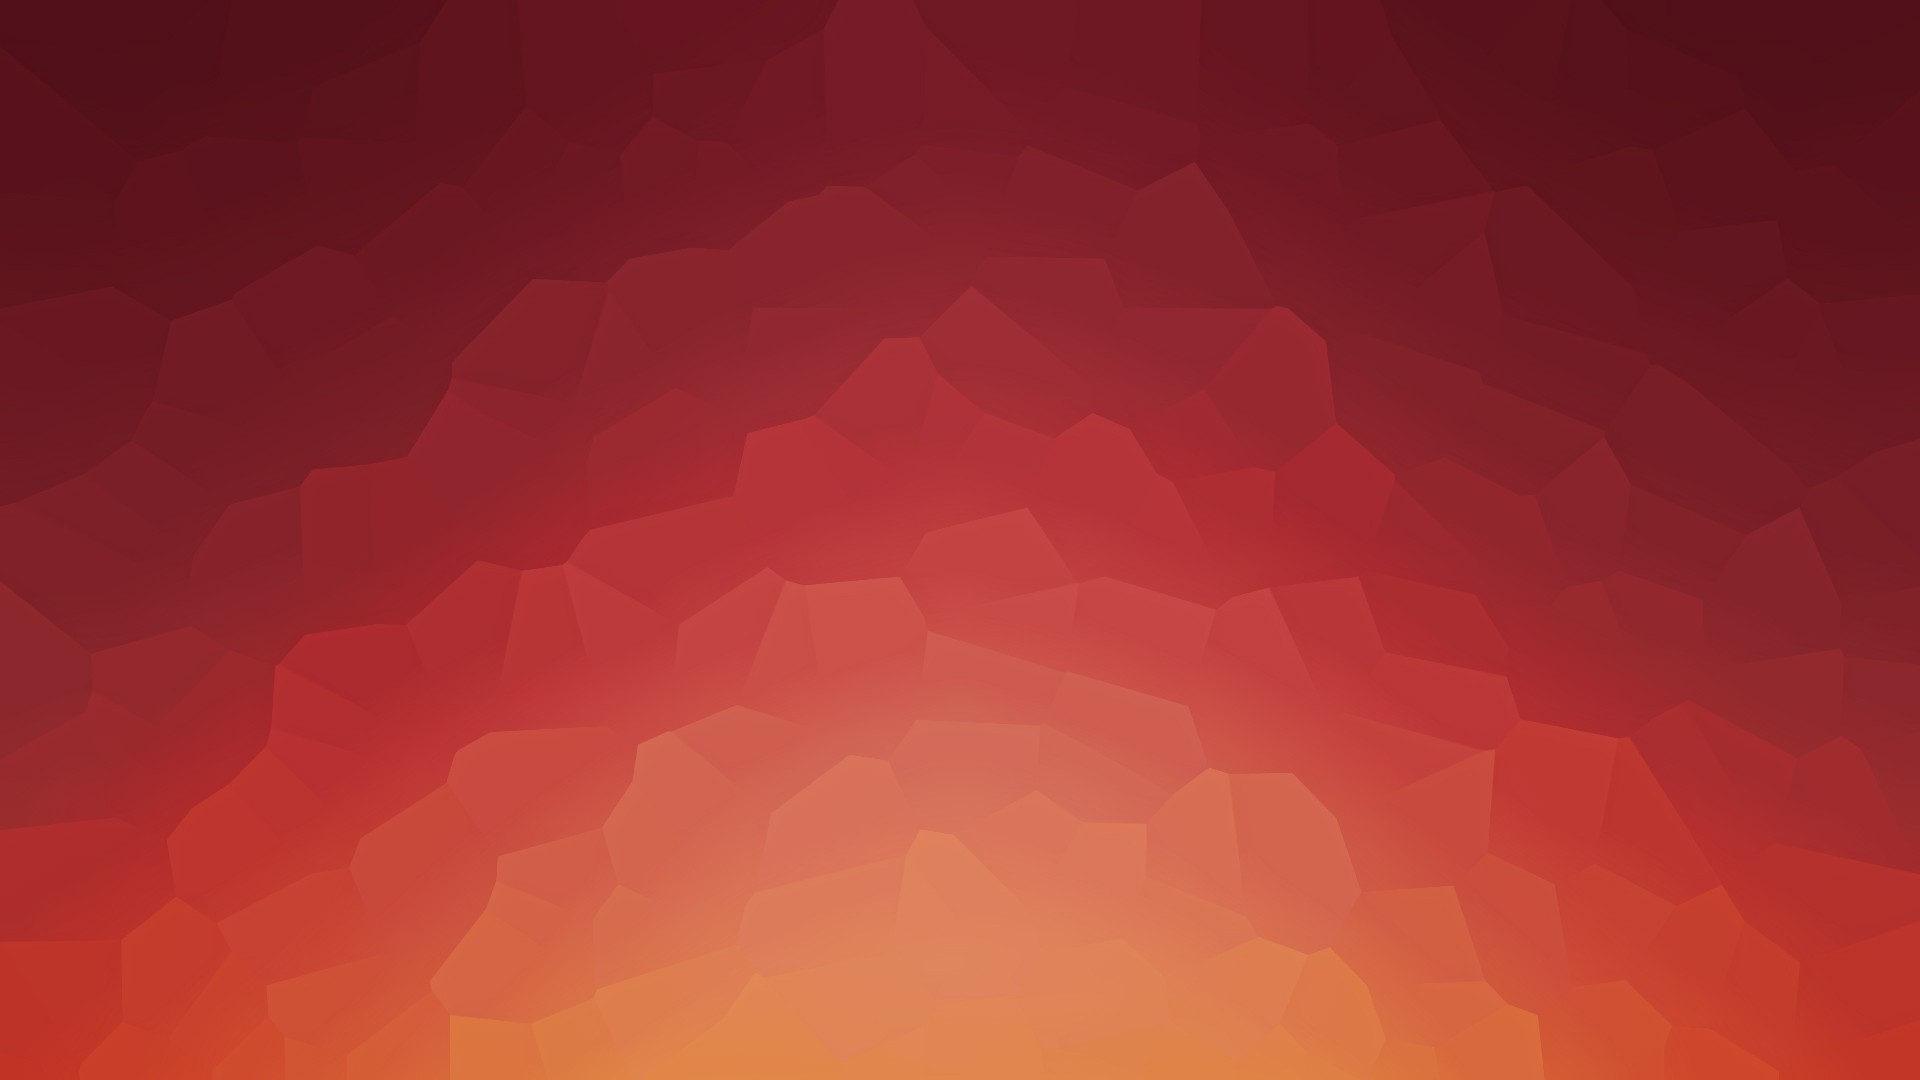 Top Red And Orange Wallpaper Wallpapers